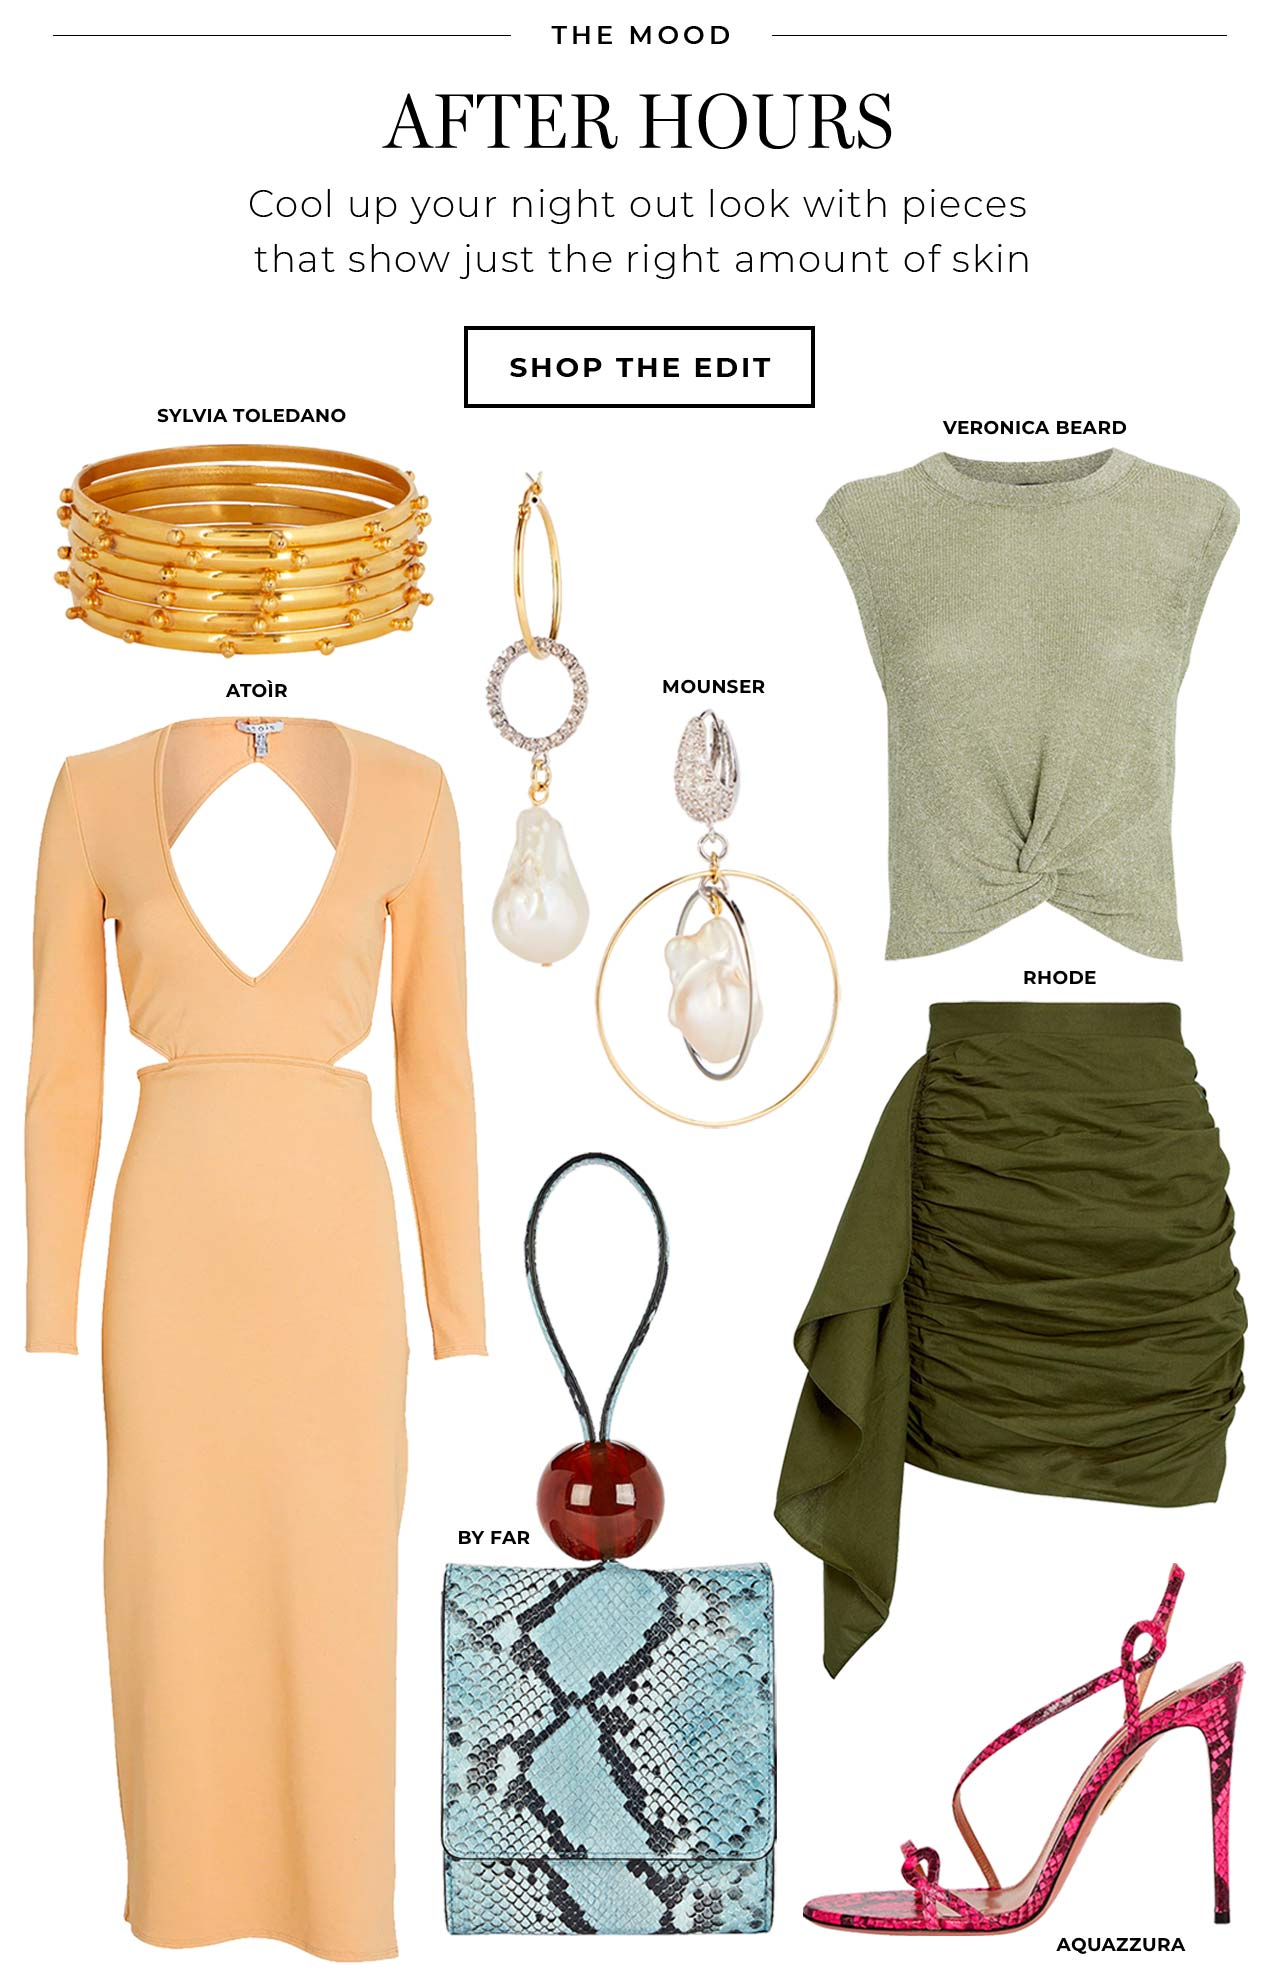 Cool up your night out look with pieces that show just the right amoutn of skin